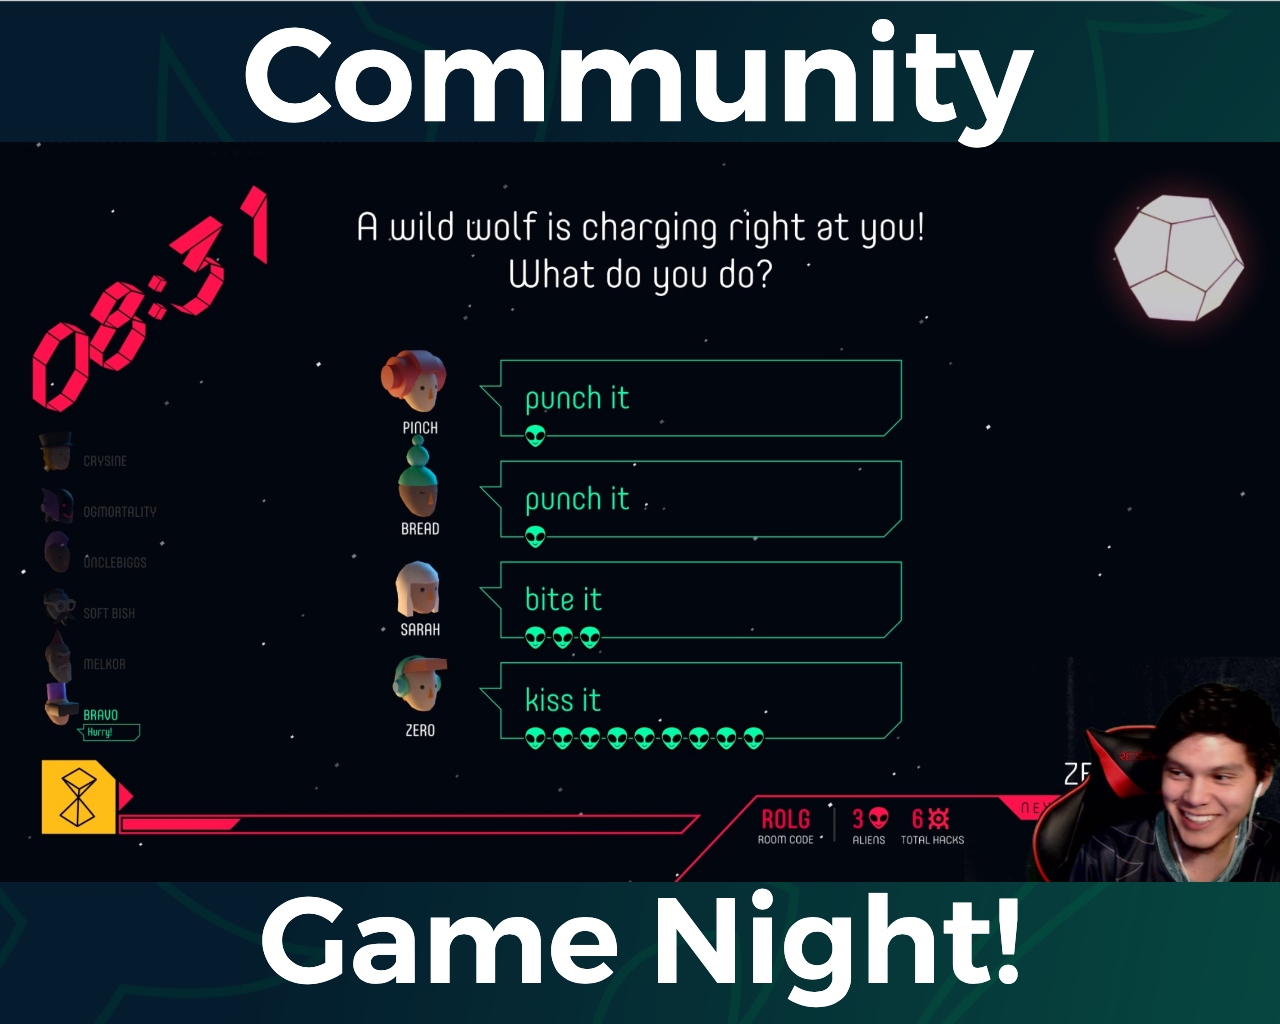 March Community Game Night